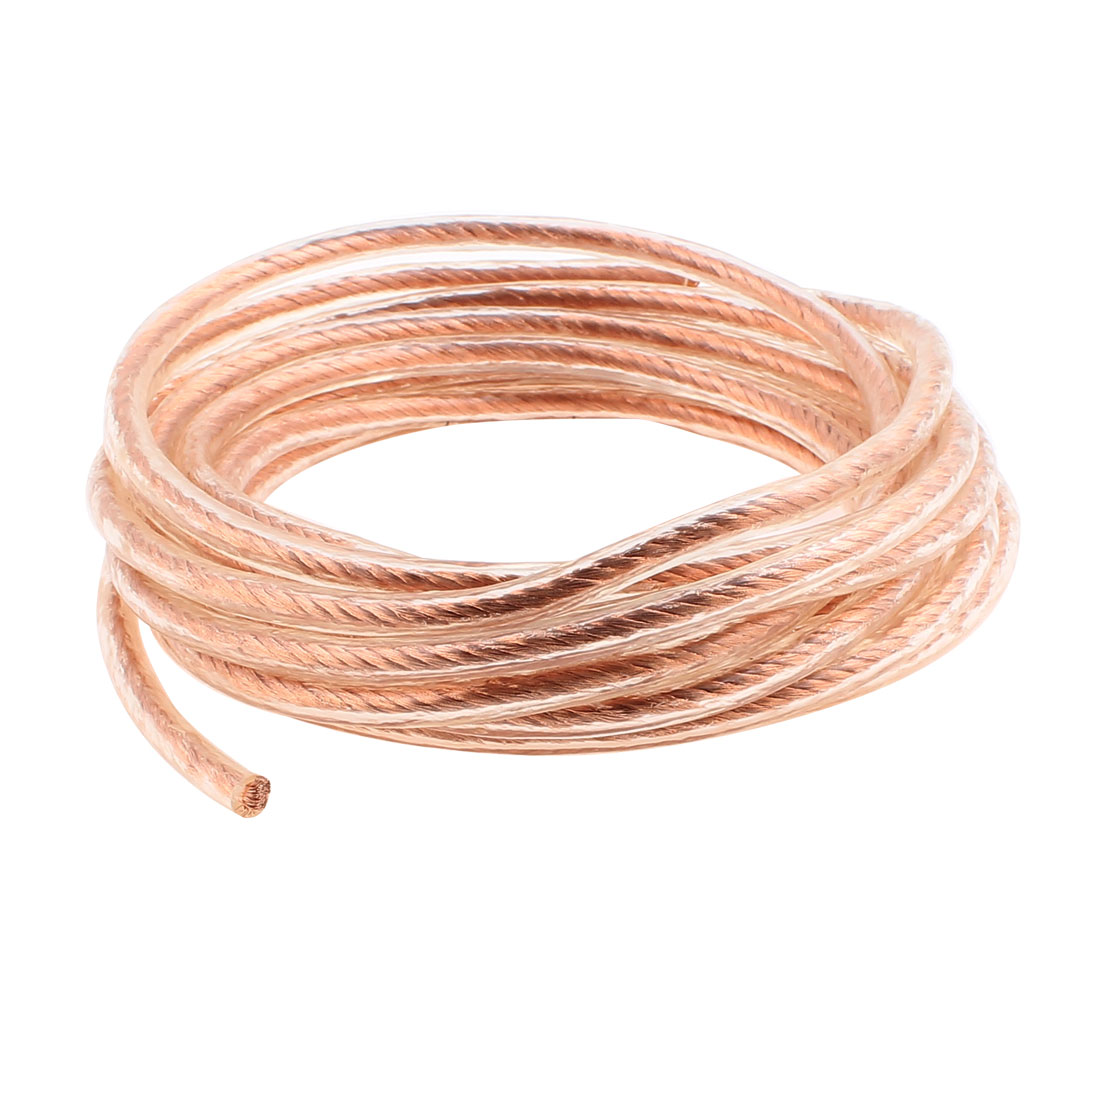 6 Square Millimeter Thickness 5M Length Electircal Braided Copper Wire